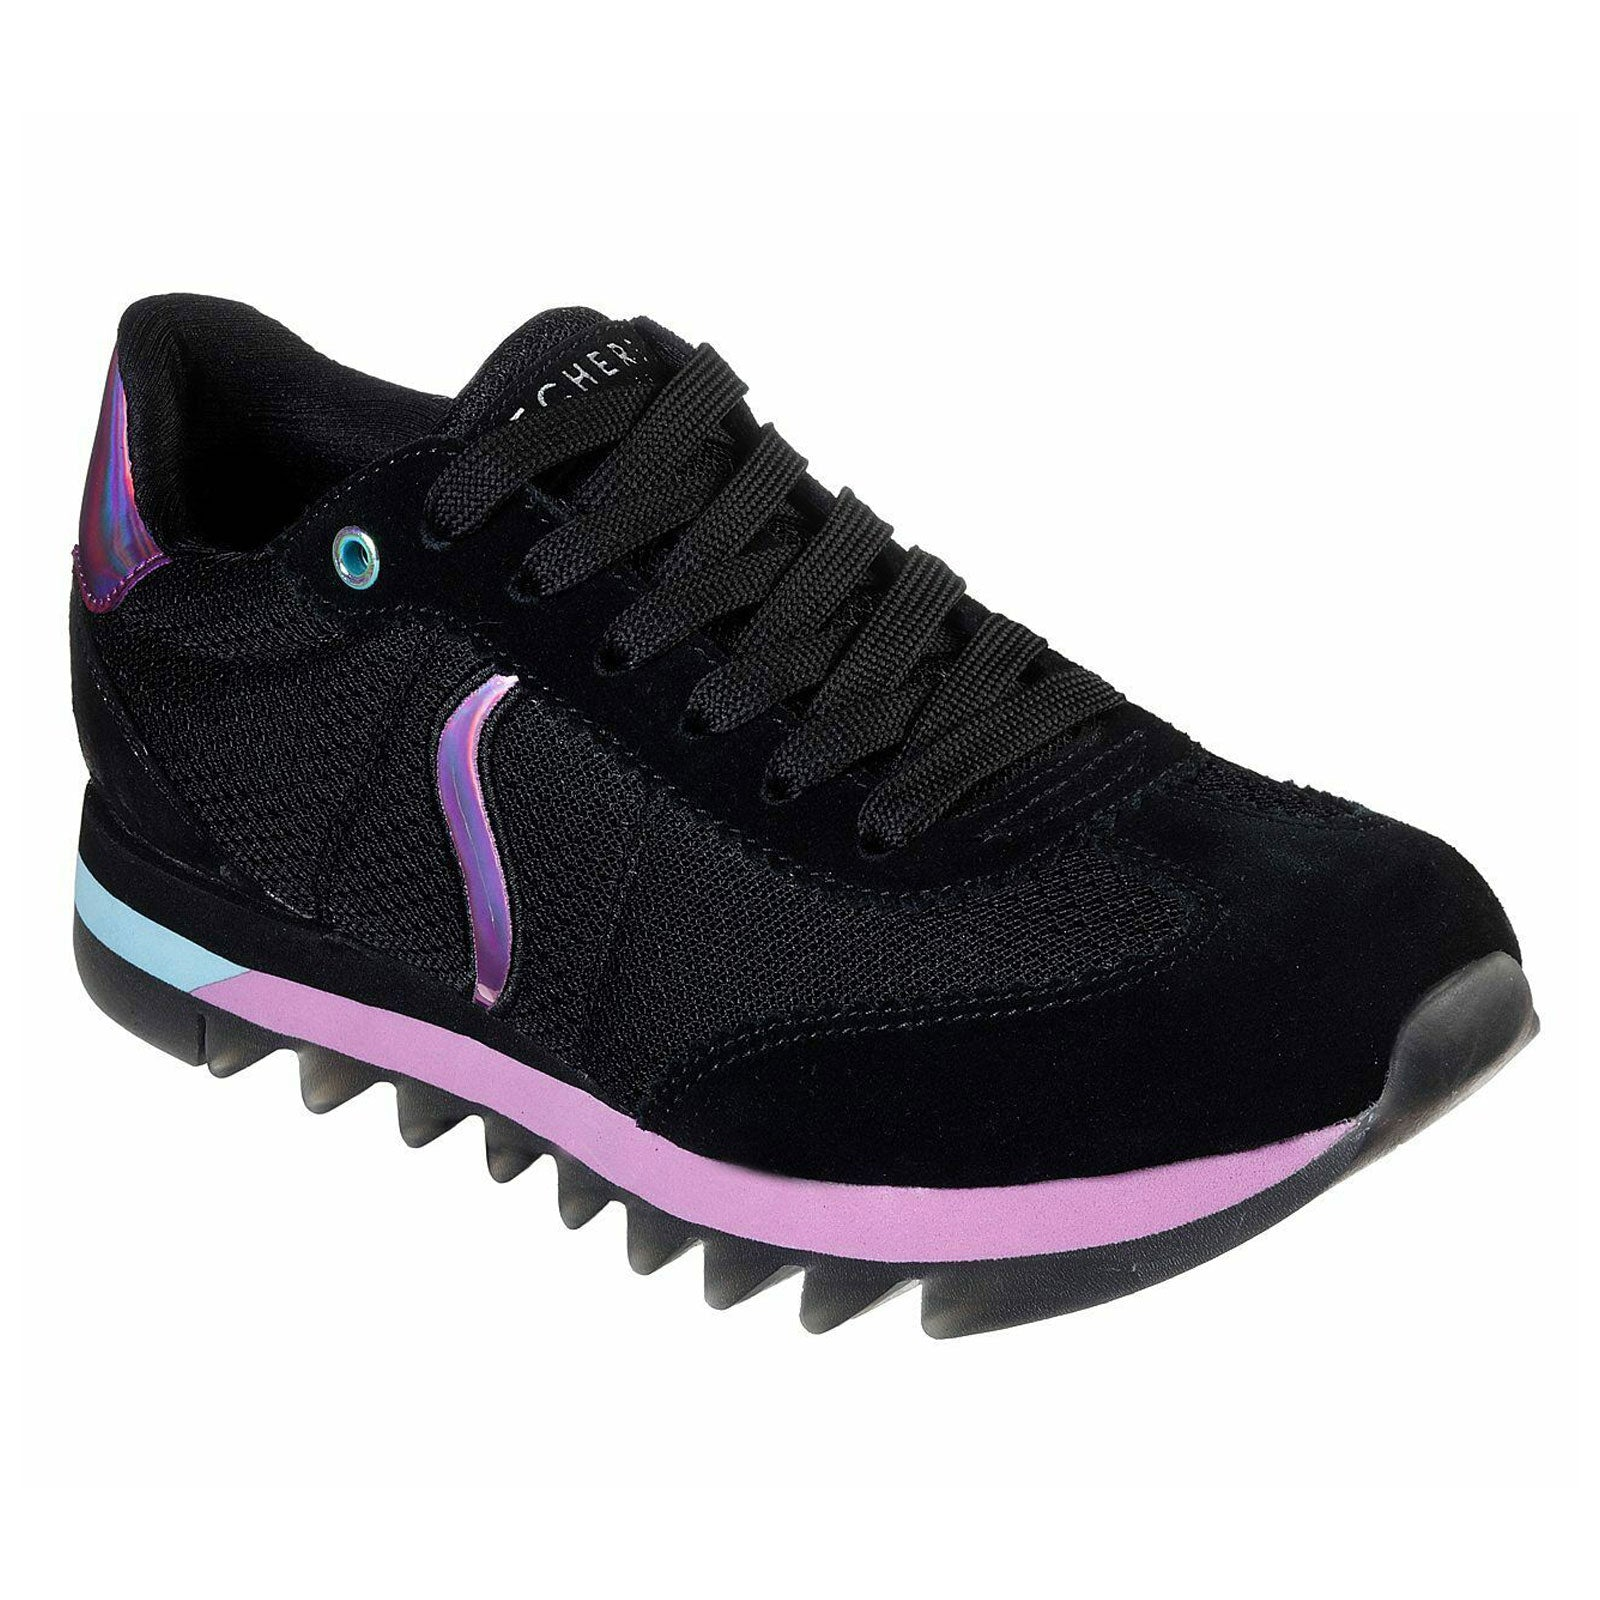 Skechers Street Venus Shredded-Black